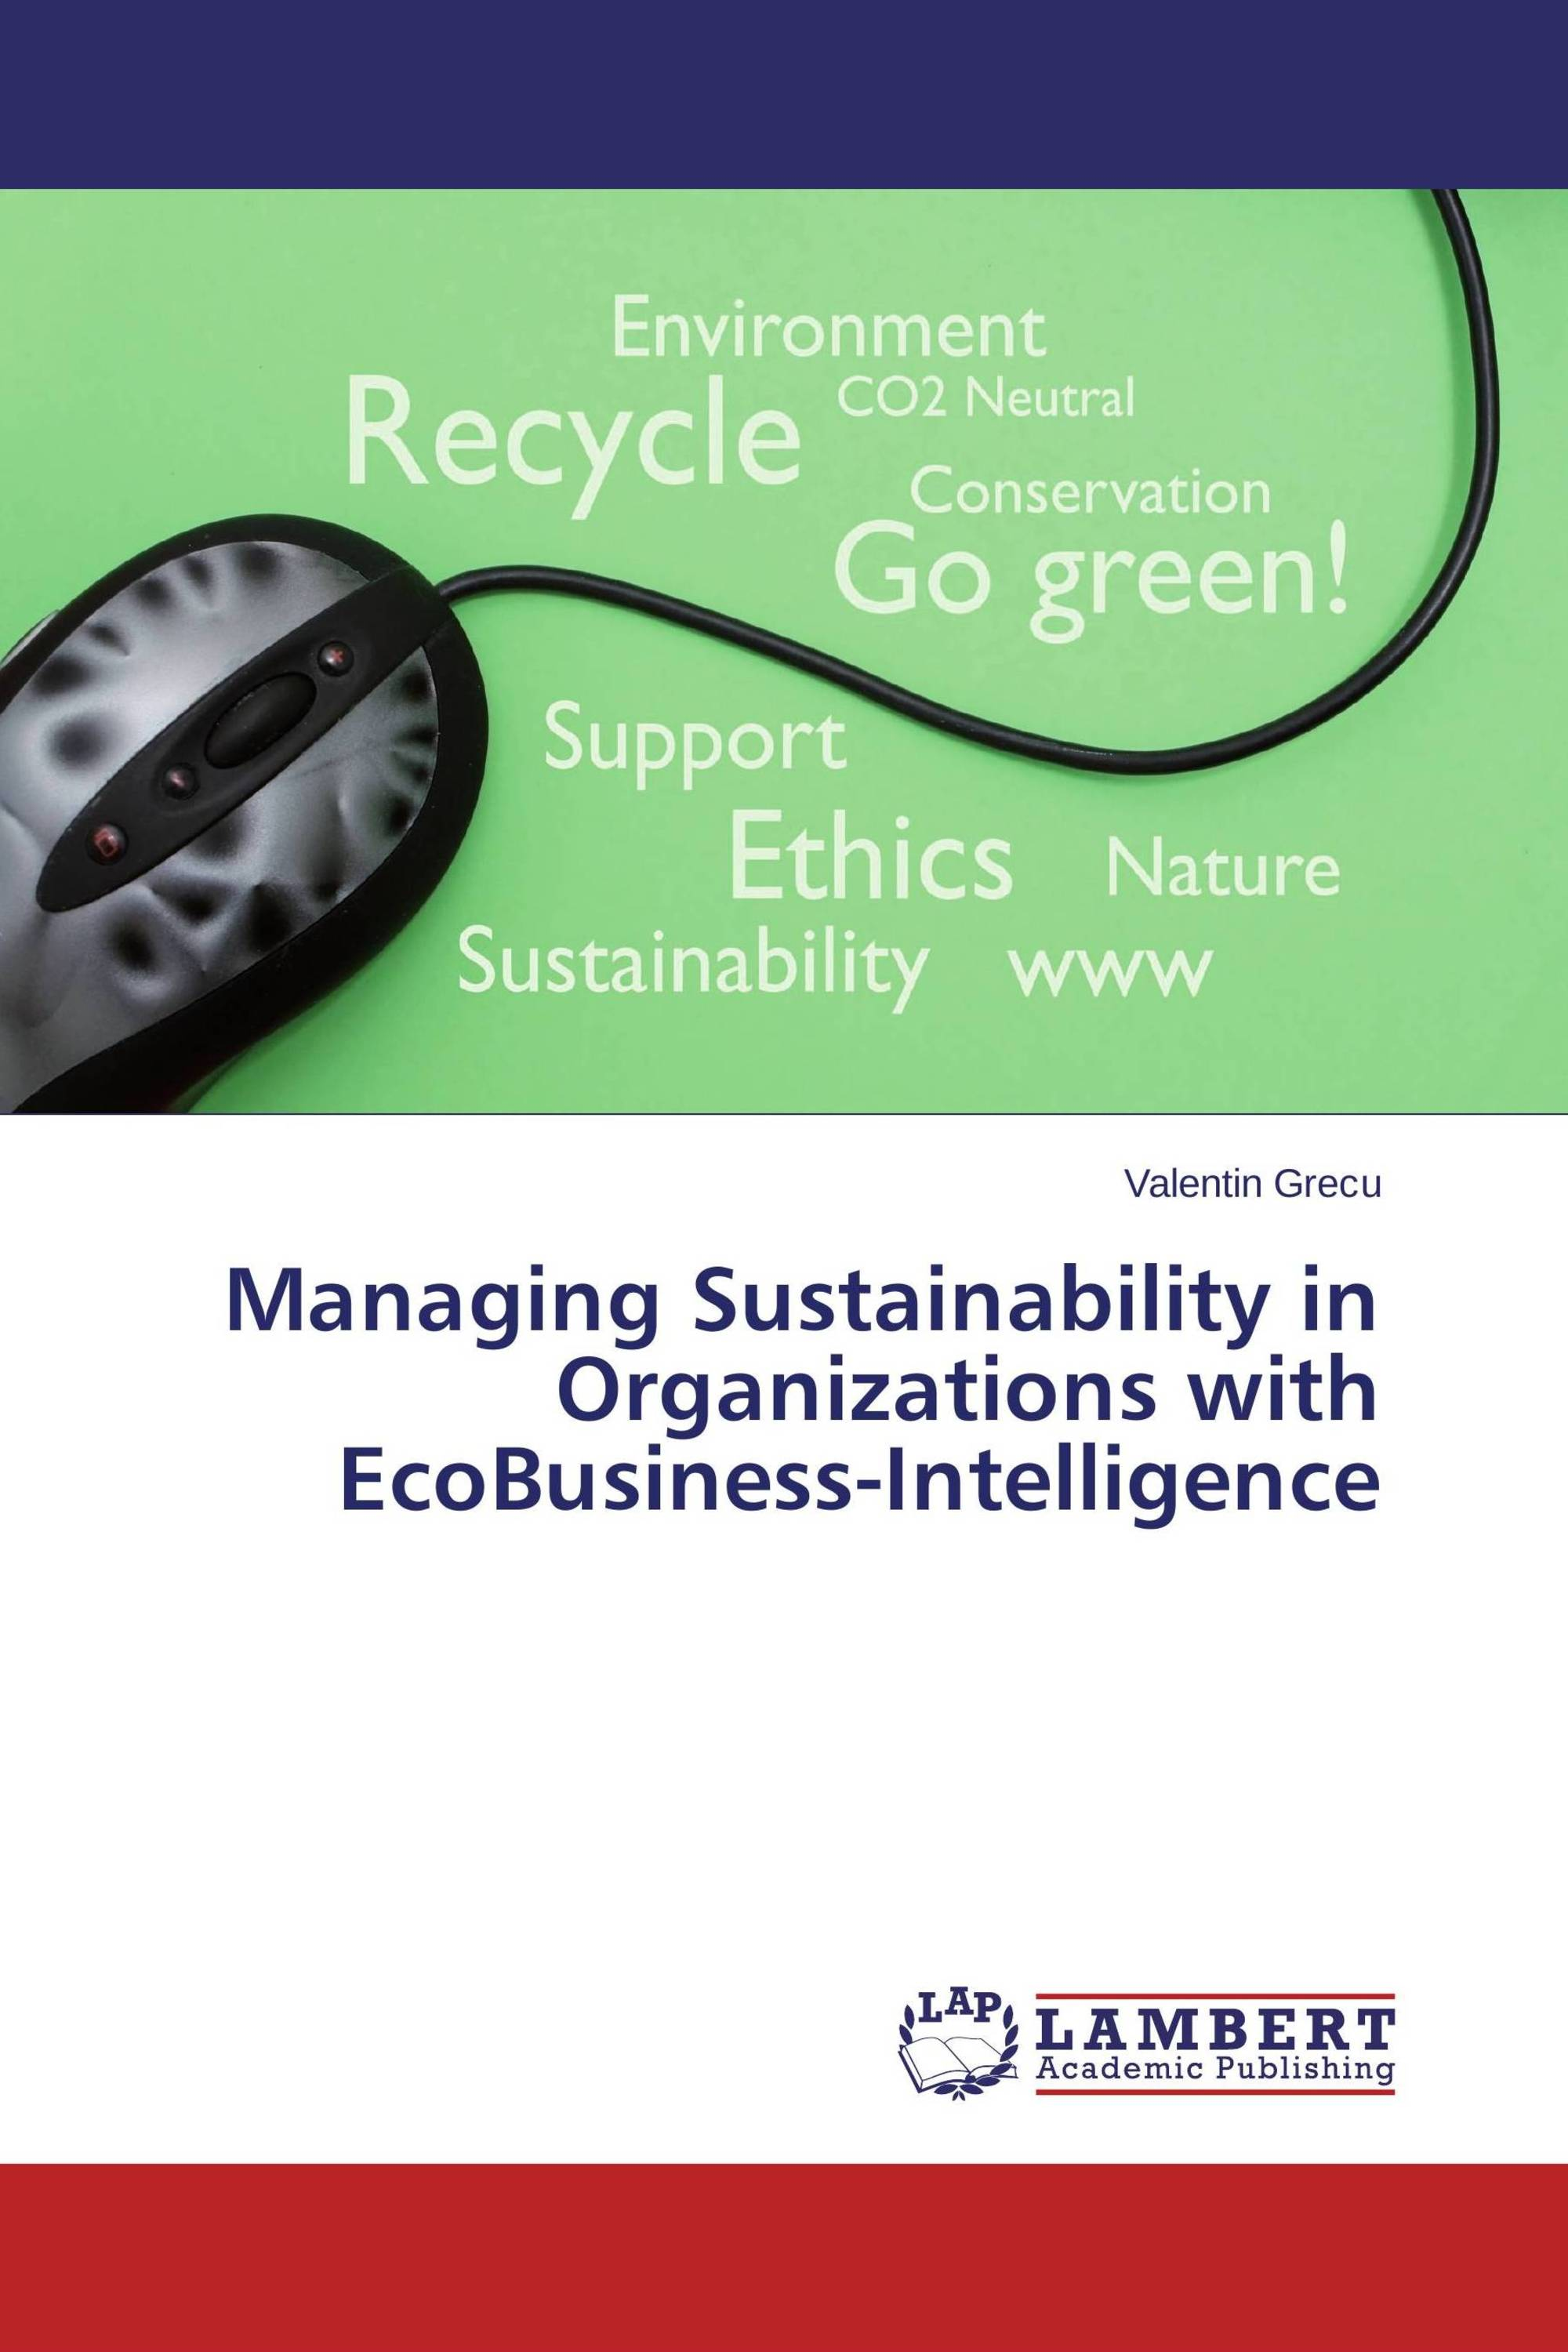 sustainability in organizations Sustainability professionals help organizations achieve their goals by ensuring that their business practices are economically, socially, and environmentally sustainable.